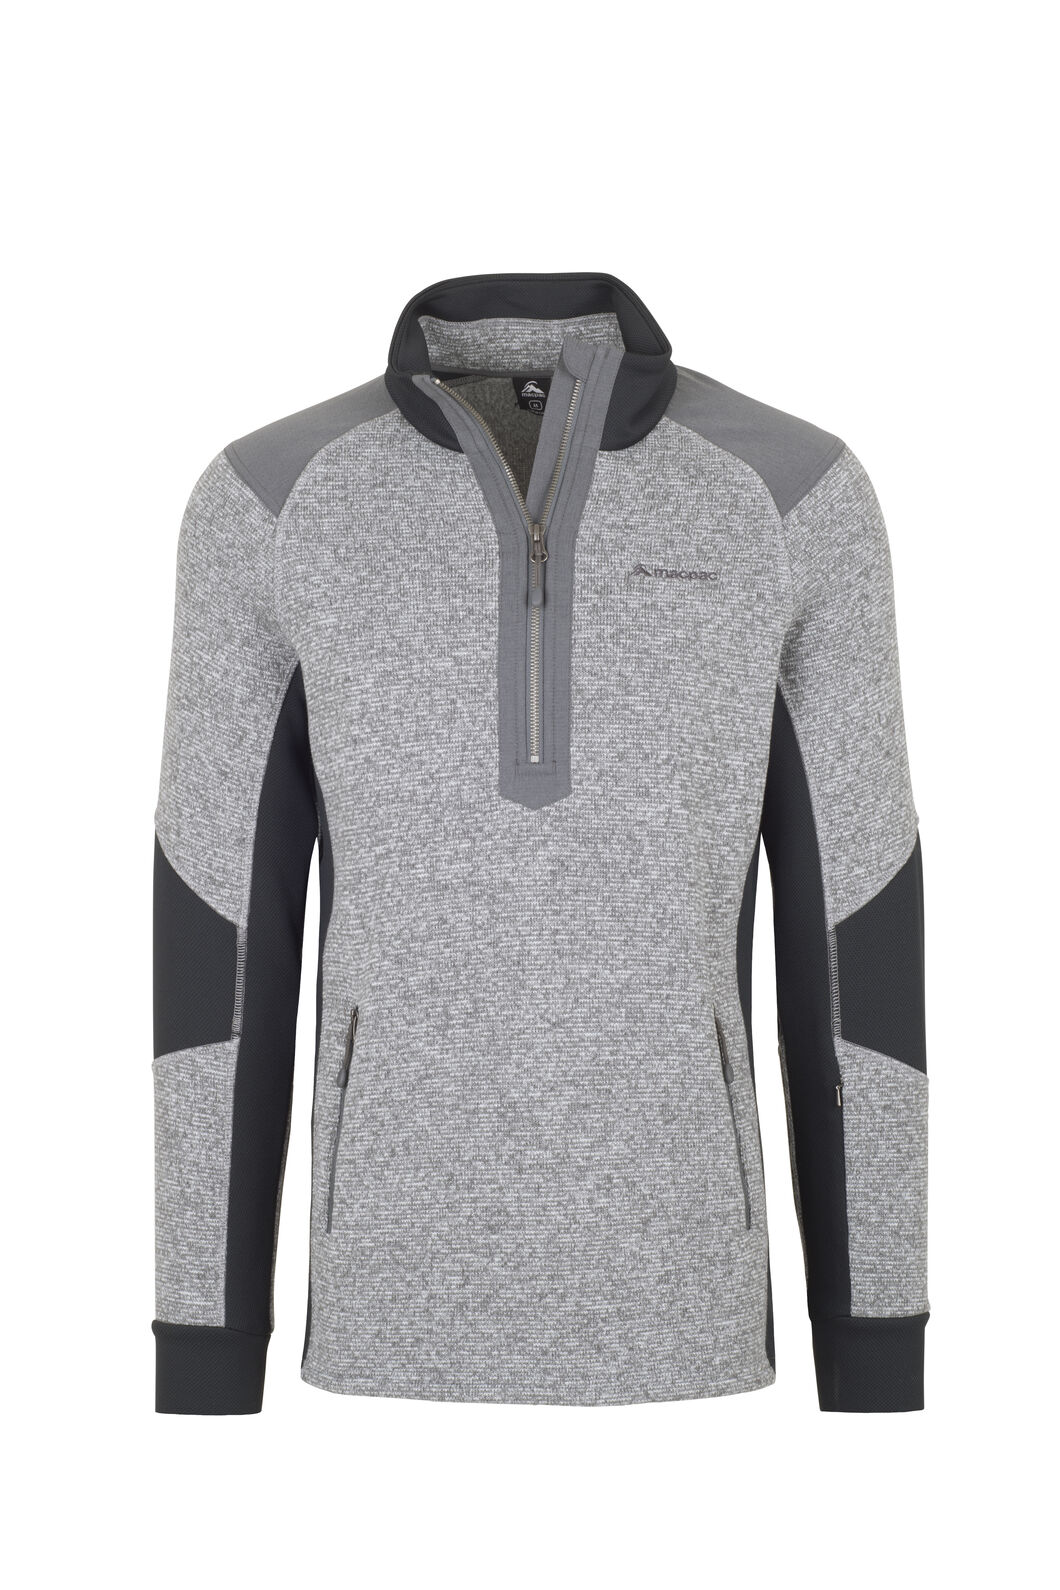 Macpac Club Field Fleece - Men's, Monument, hi-res